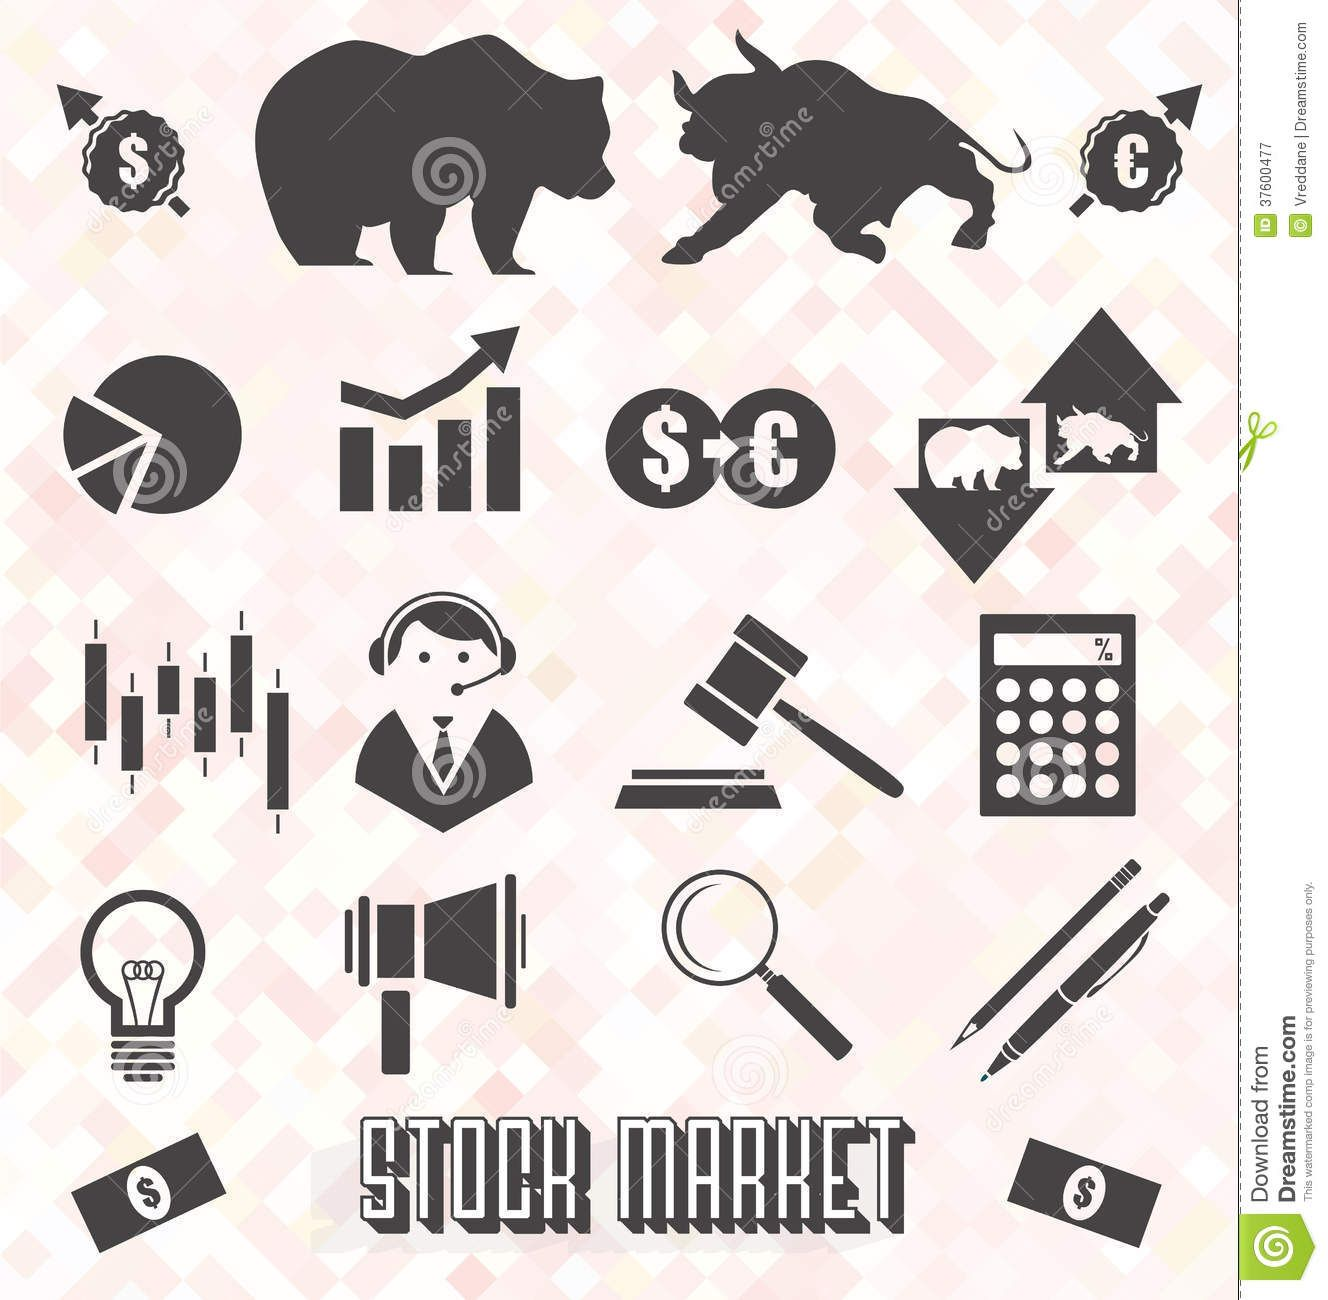 Market symbols google search retro inspiration pinterest market symbols google search biocorpaavc Gallery